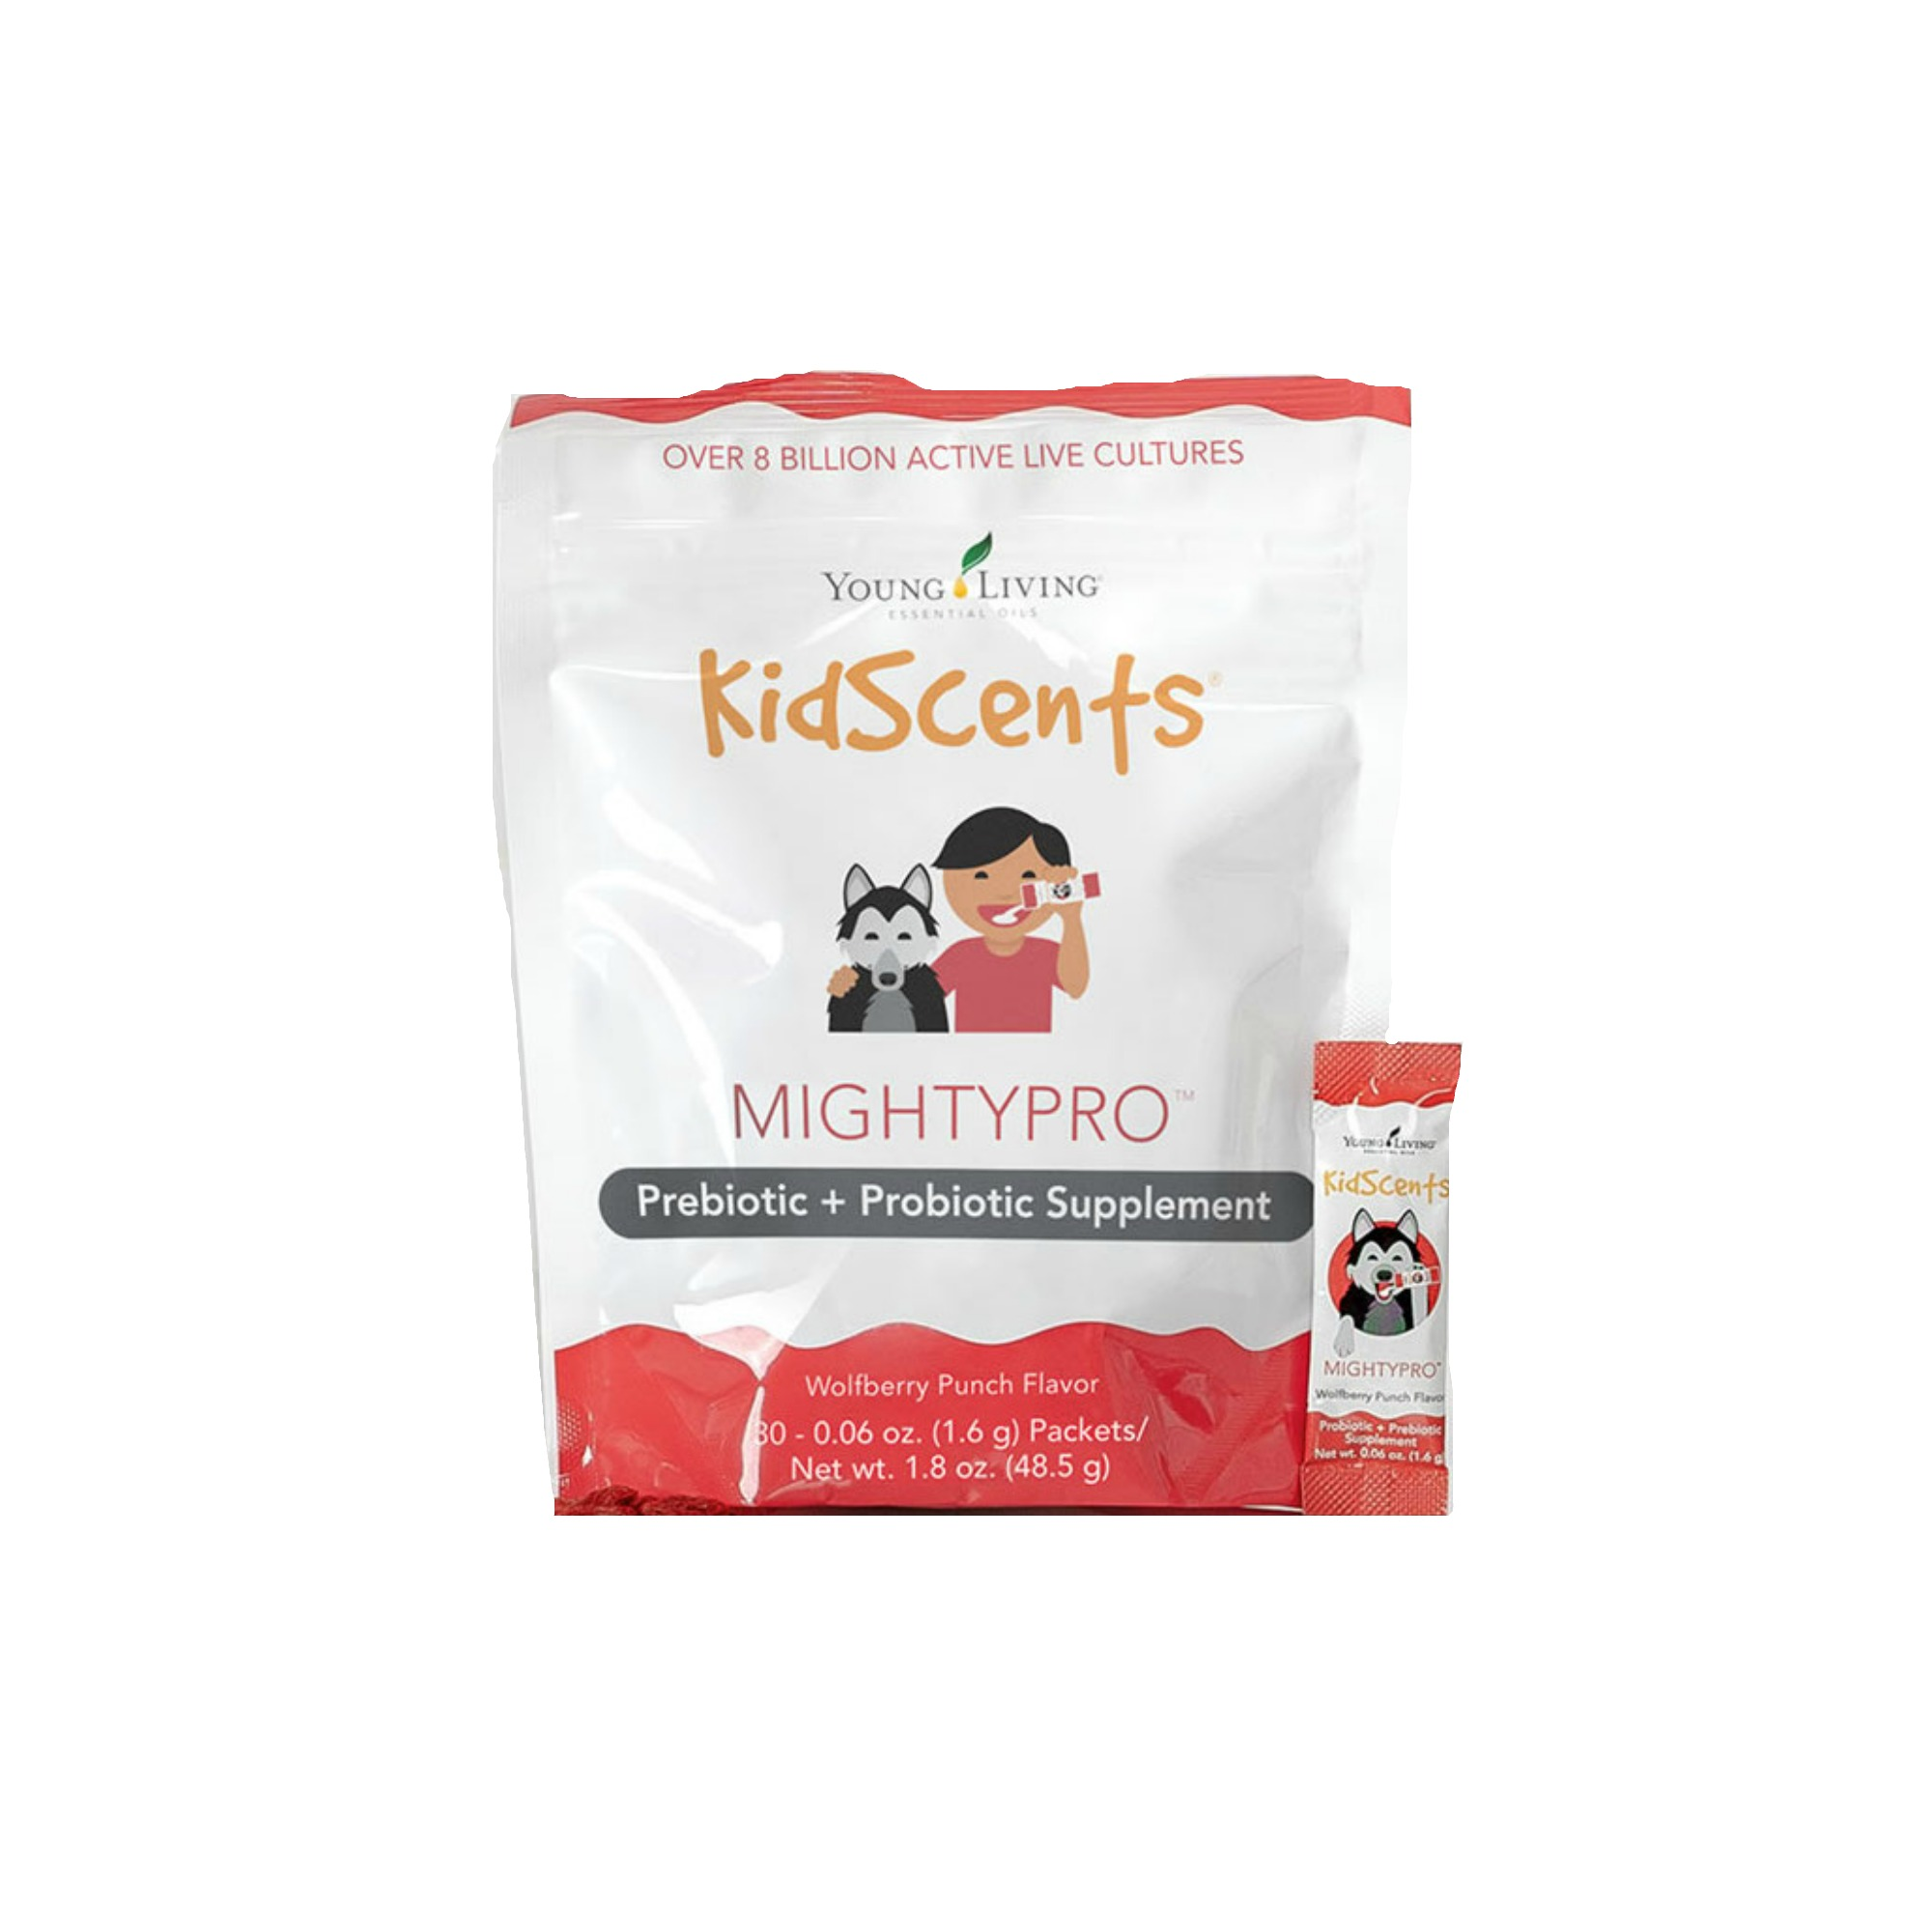 KIDSCENTS MIGHTYPRO    Kidscents MightyPro is a blend of prebiotics and probiotics in a supplement specially formulated for children (but great for adults too). Packaged in easy, one-dose packets that can be taken almost anywhere you go, this supplement features over 8 billion active, live cultures to support digestive and immune health. The packets can be added to cold food and drinks for easy consumption, or can be consumed straight from the packet. Contains Ningxia wolfberry fiber, which is a naturally occurring prebiotic.   Click here   to learn more about this product.